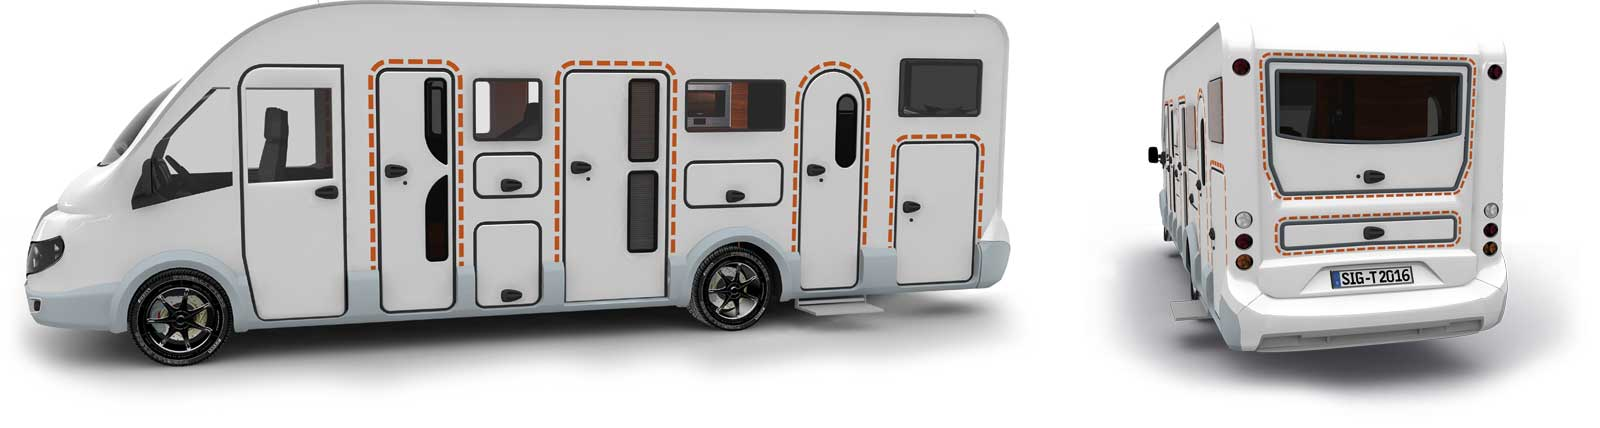 Satisfied tegos customers with Dethleffs caravans and RVs